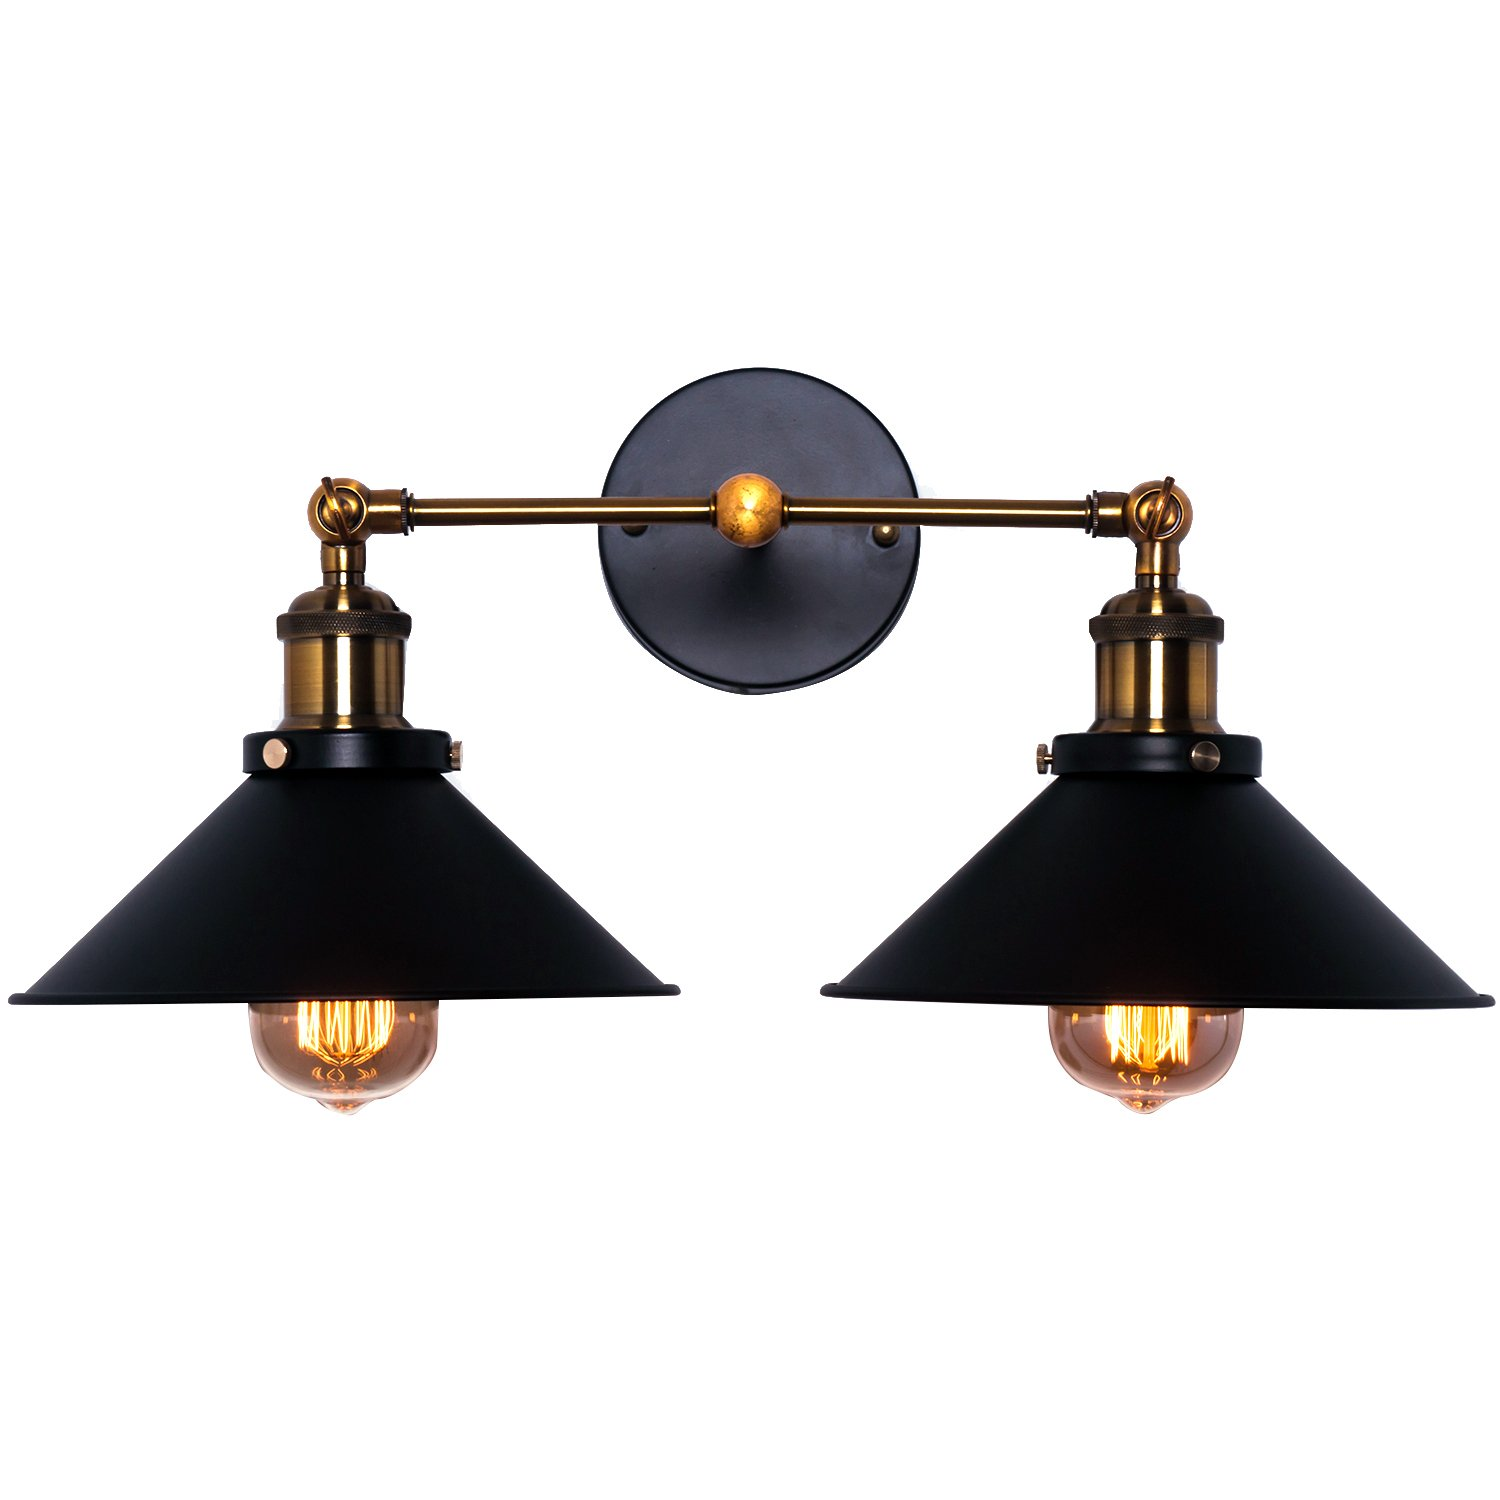 Wall Sconce Lighting Shade, Topotdor Industrial Edison Simplicity 2 Light Wall Mount Light Sconces Aged Steel Finished